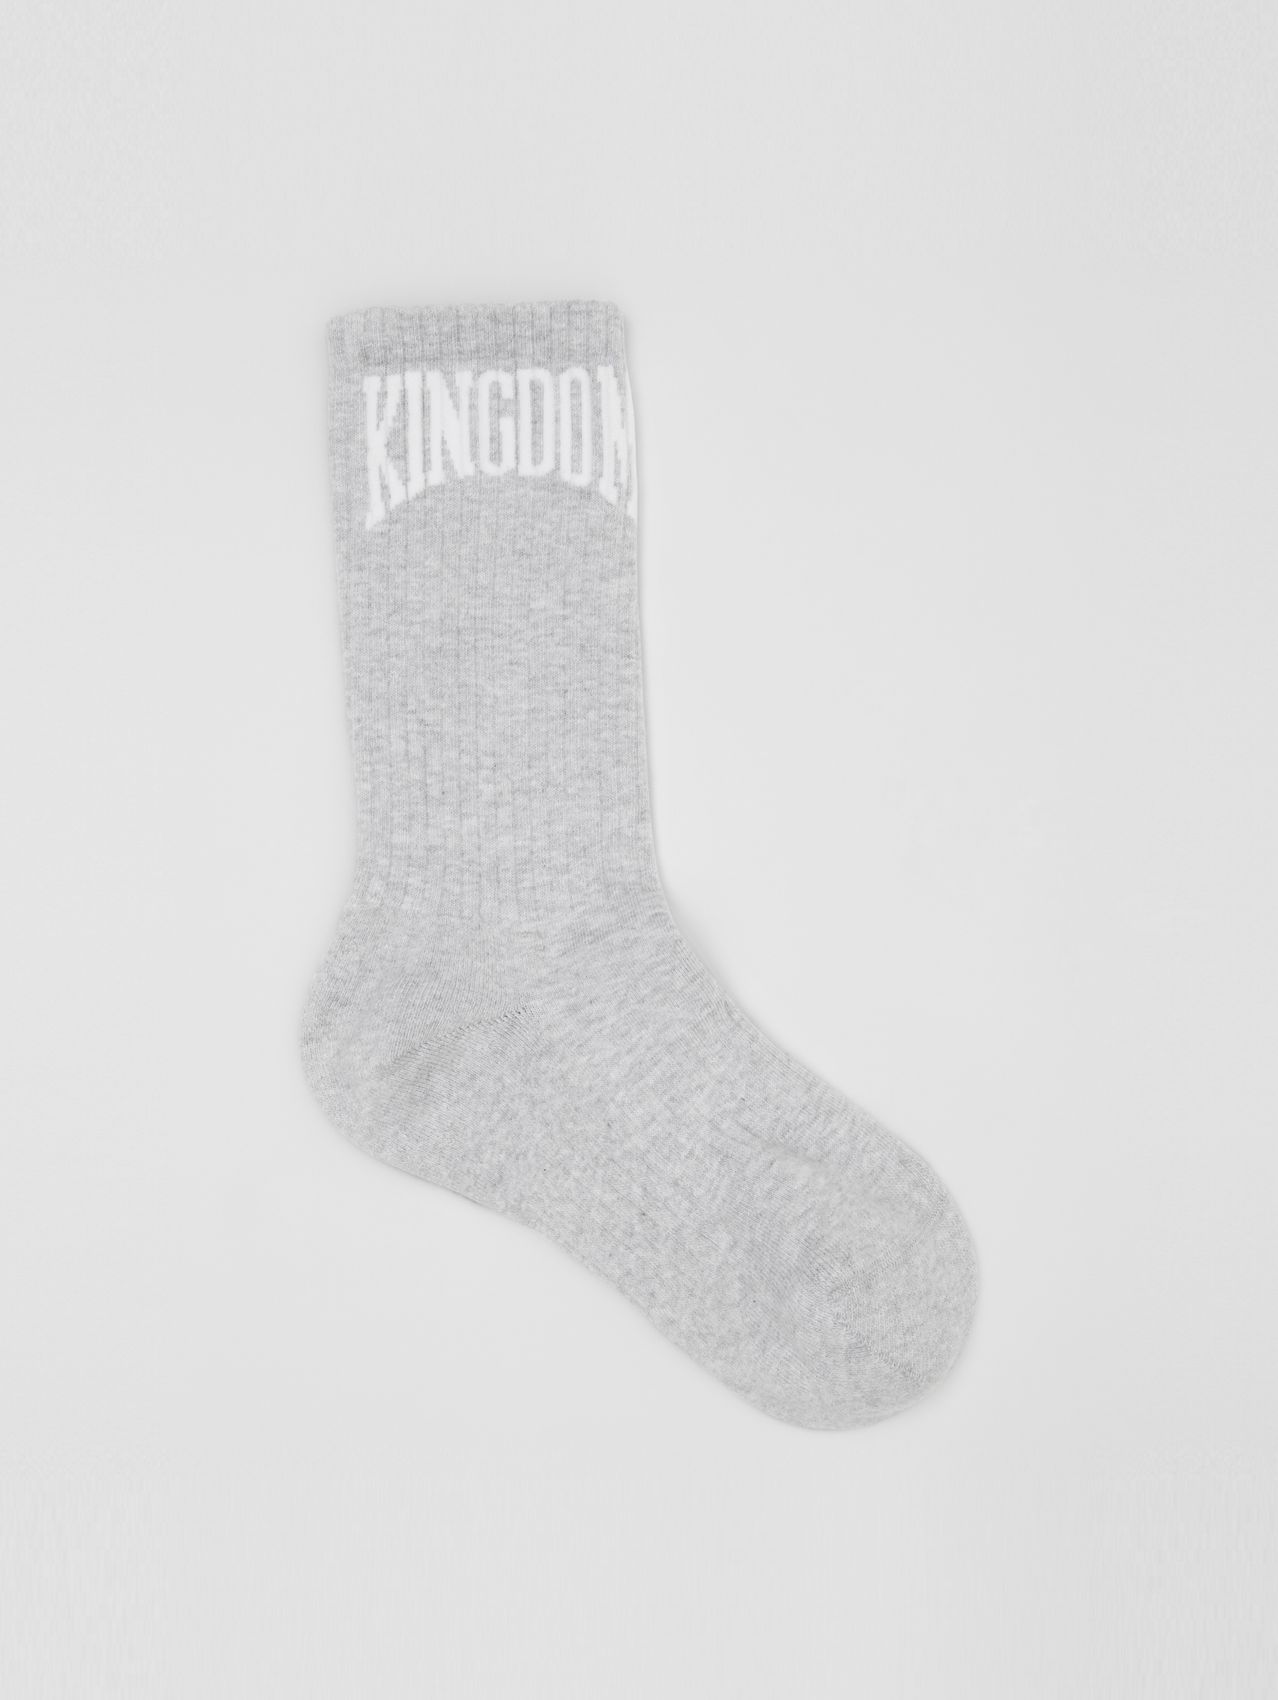 Kingdom Intarsia Cotton Blend Socks in Pebble Grey